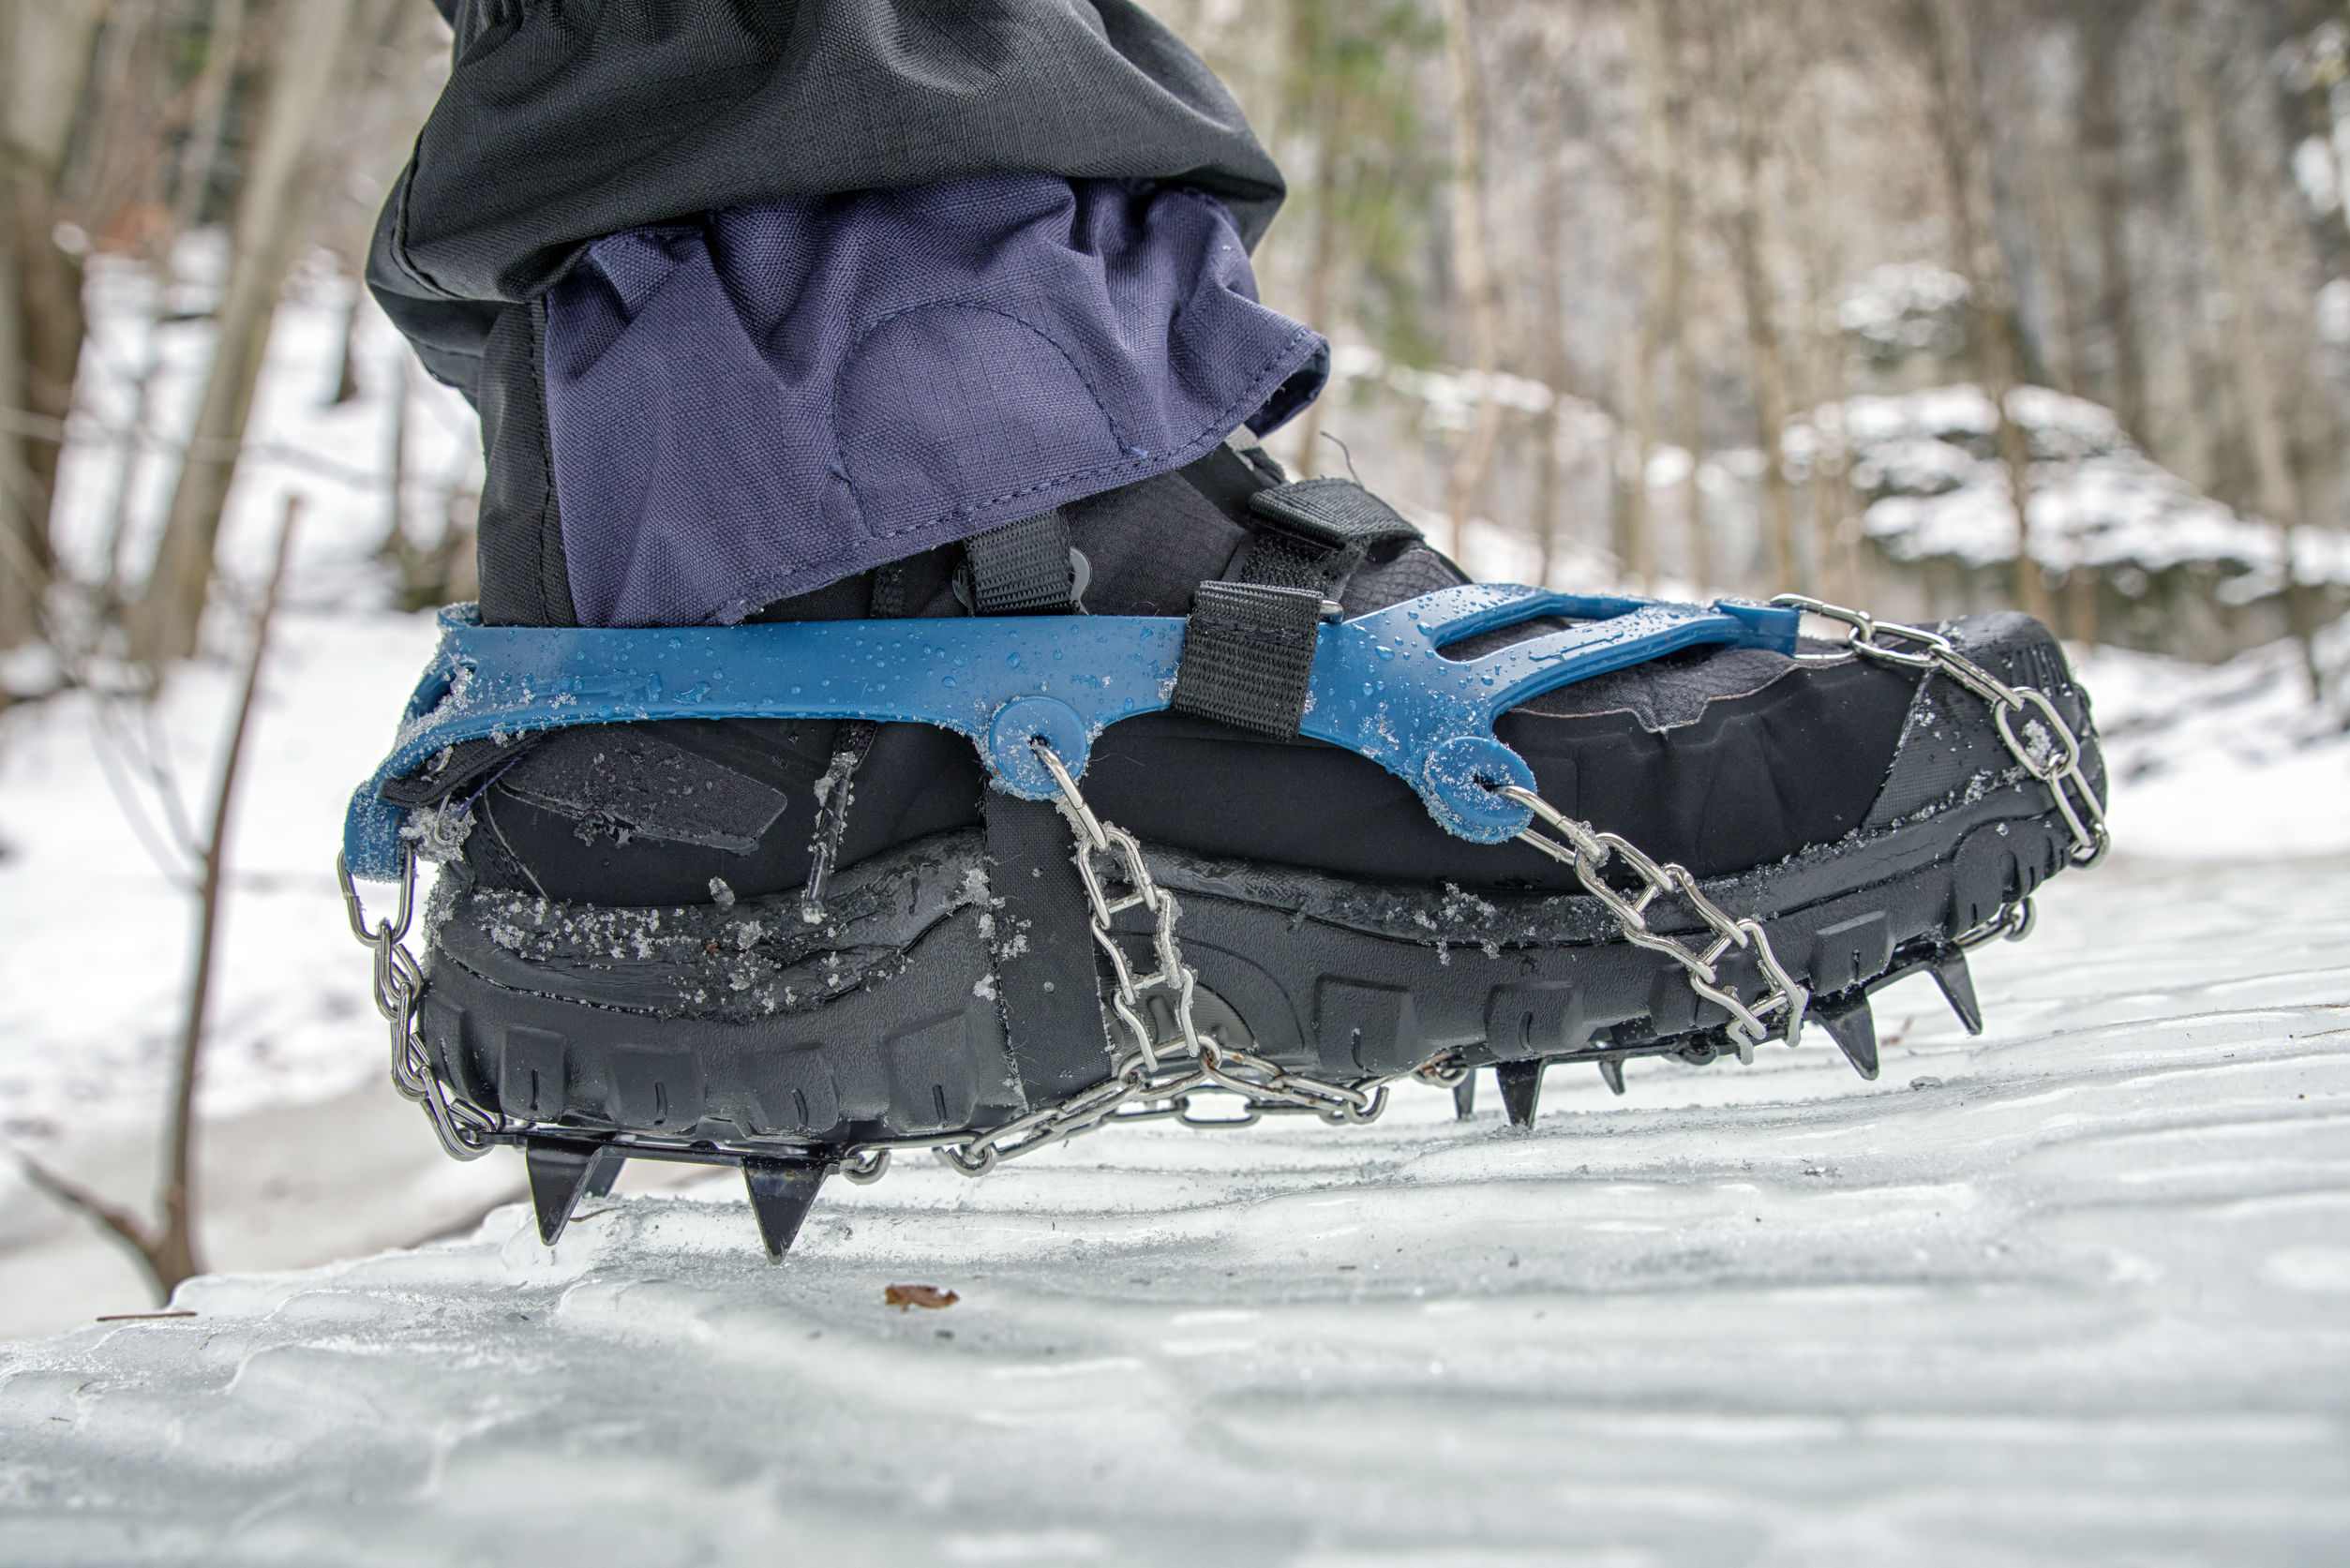 Crampons on black hiking boots